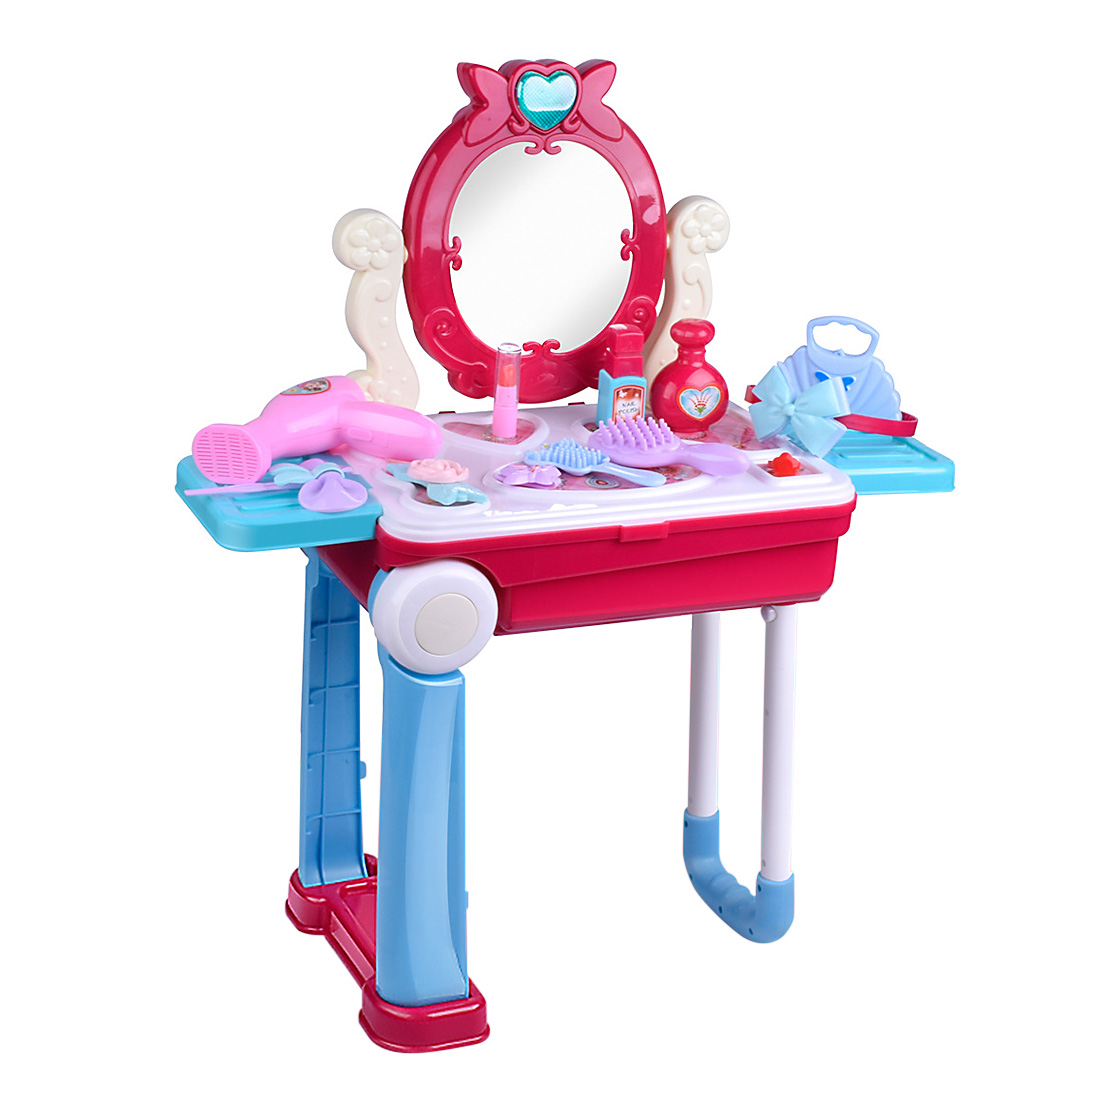 14Pcs/set Children Makeup Pretend Playset Dressing Table Suitcase Toys With Light And Sound Kids Make Up Toy Set For Girls Gifts